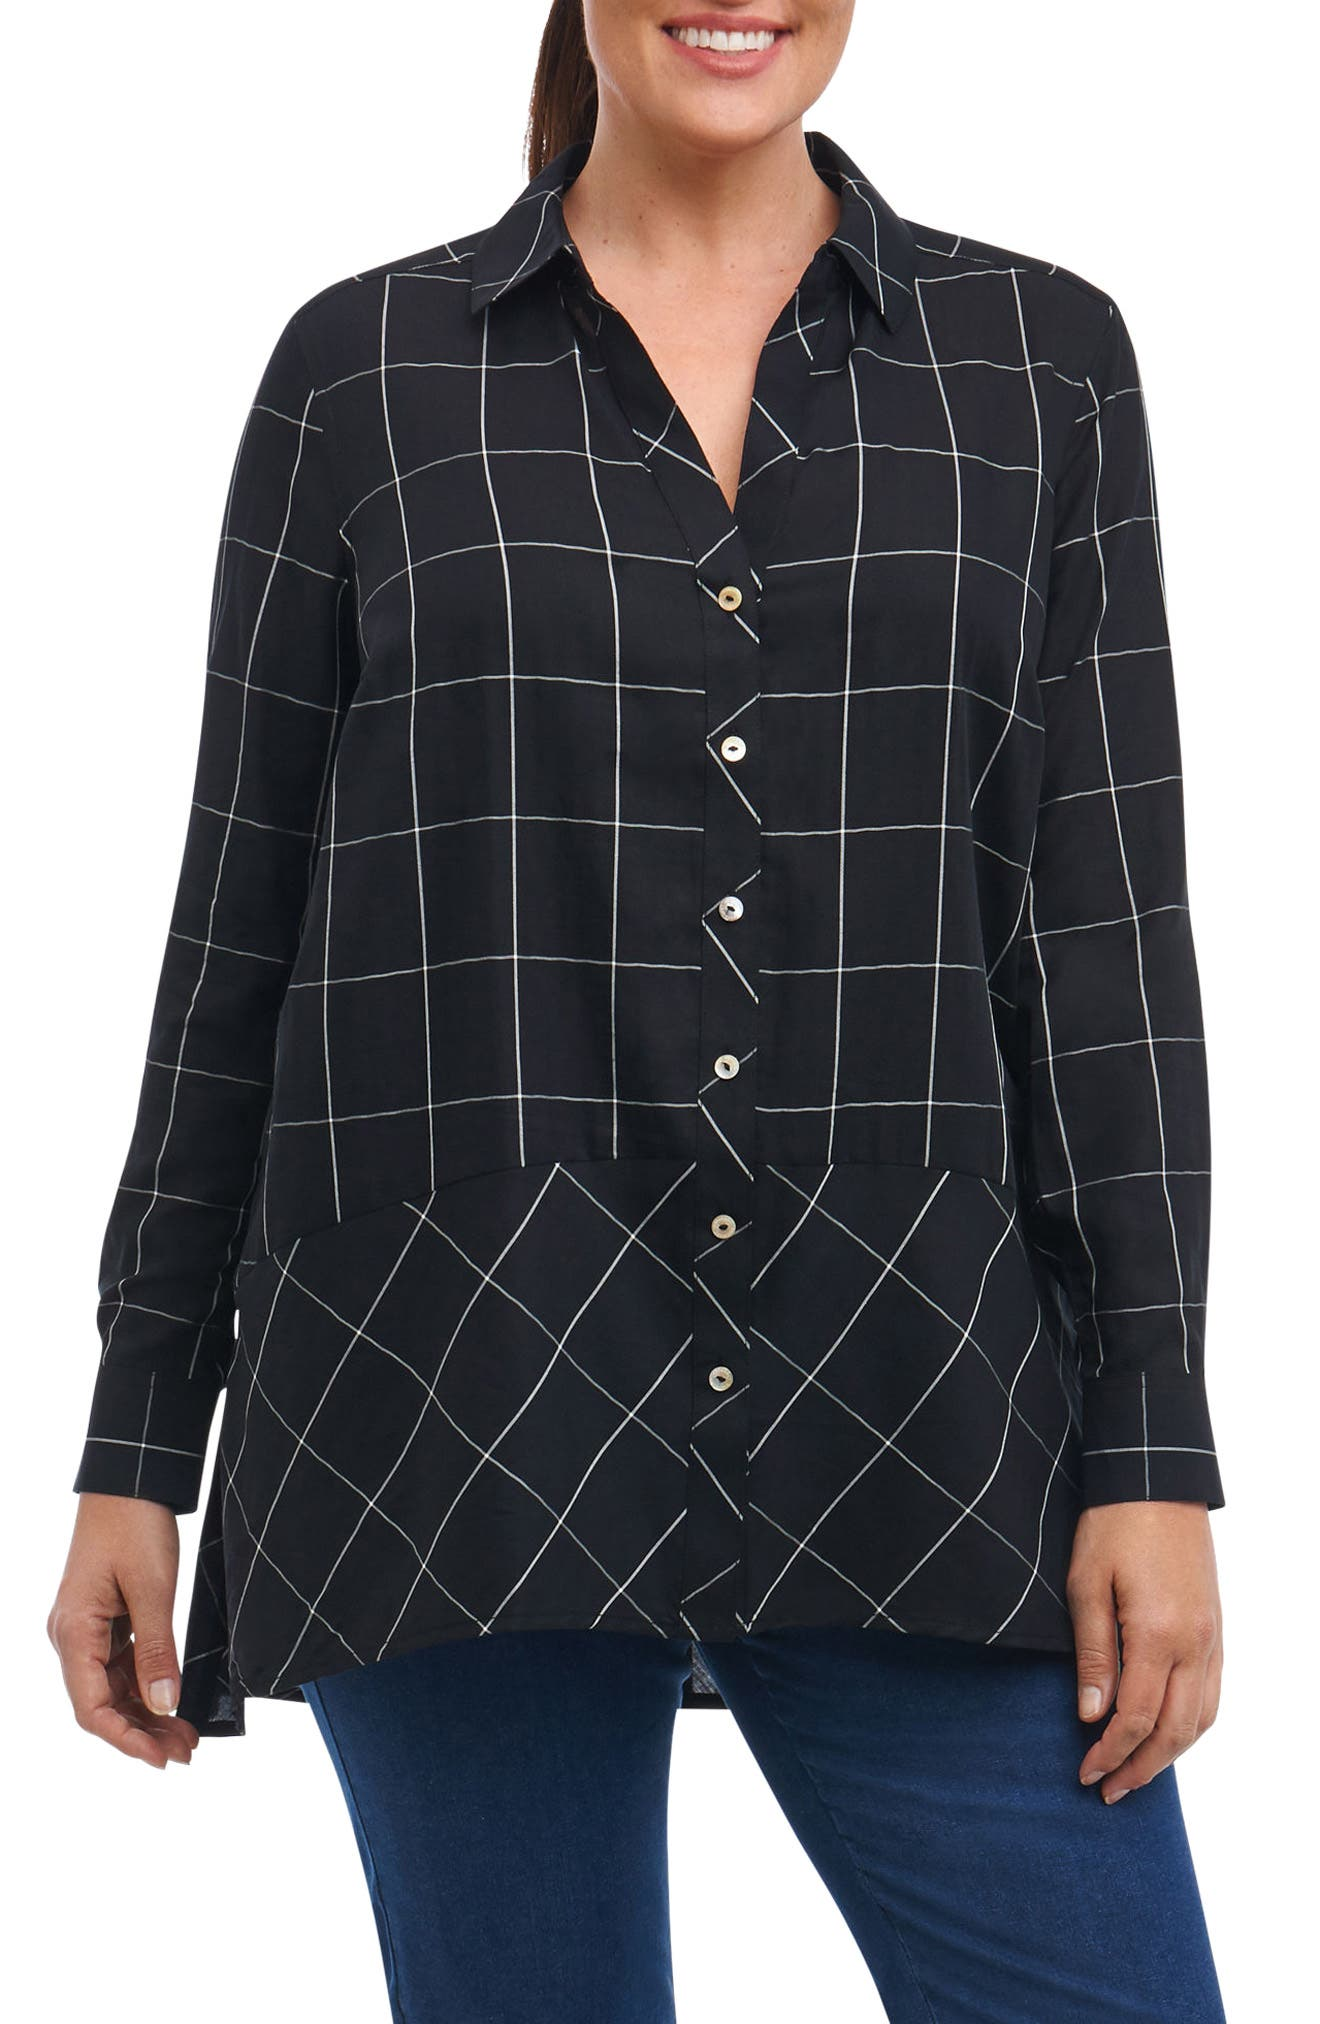 Main Image - Foxcroft Daniela Windowpane Tunic Shirt (Plus Size)